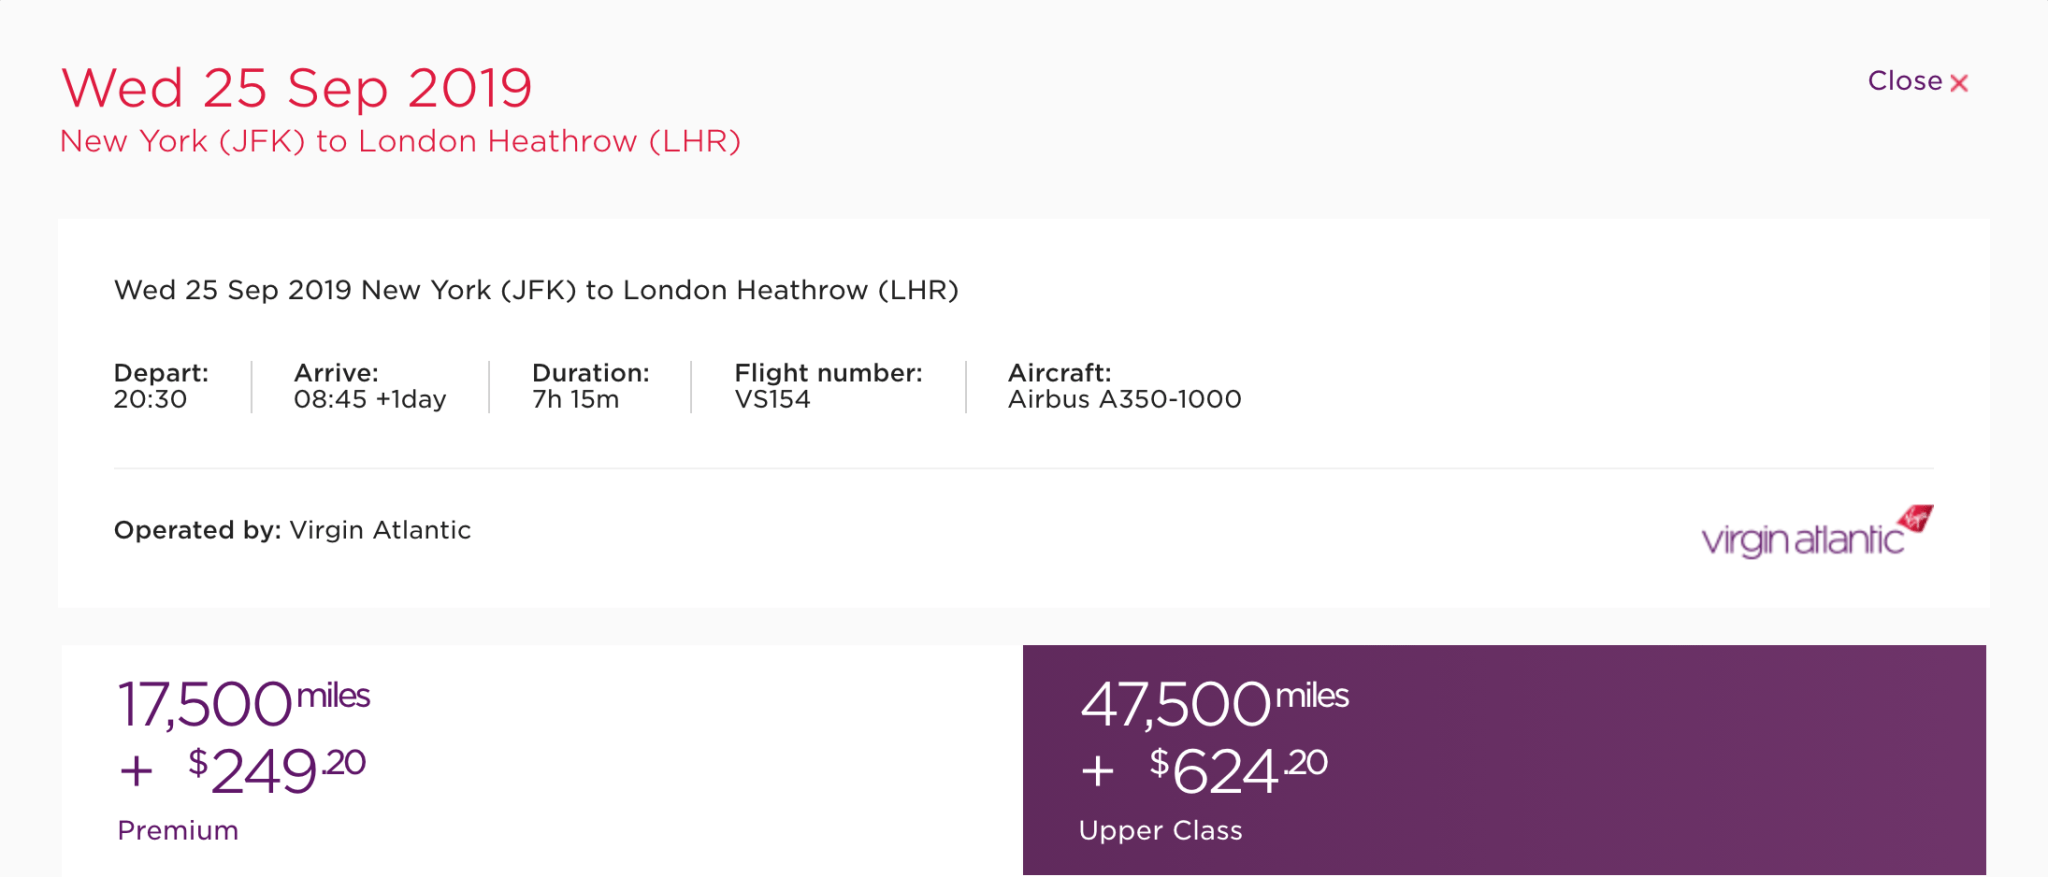 Premium and Upper Class award pricing and availability for a fight operated by Virgin